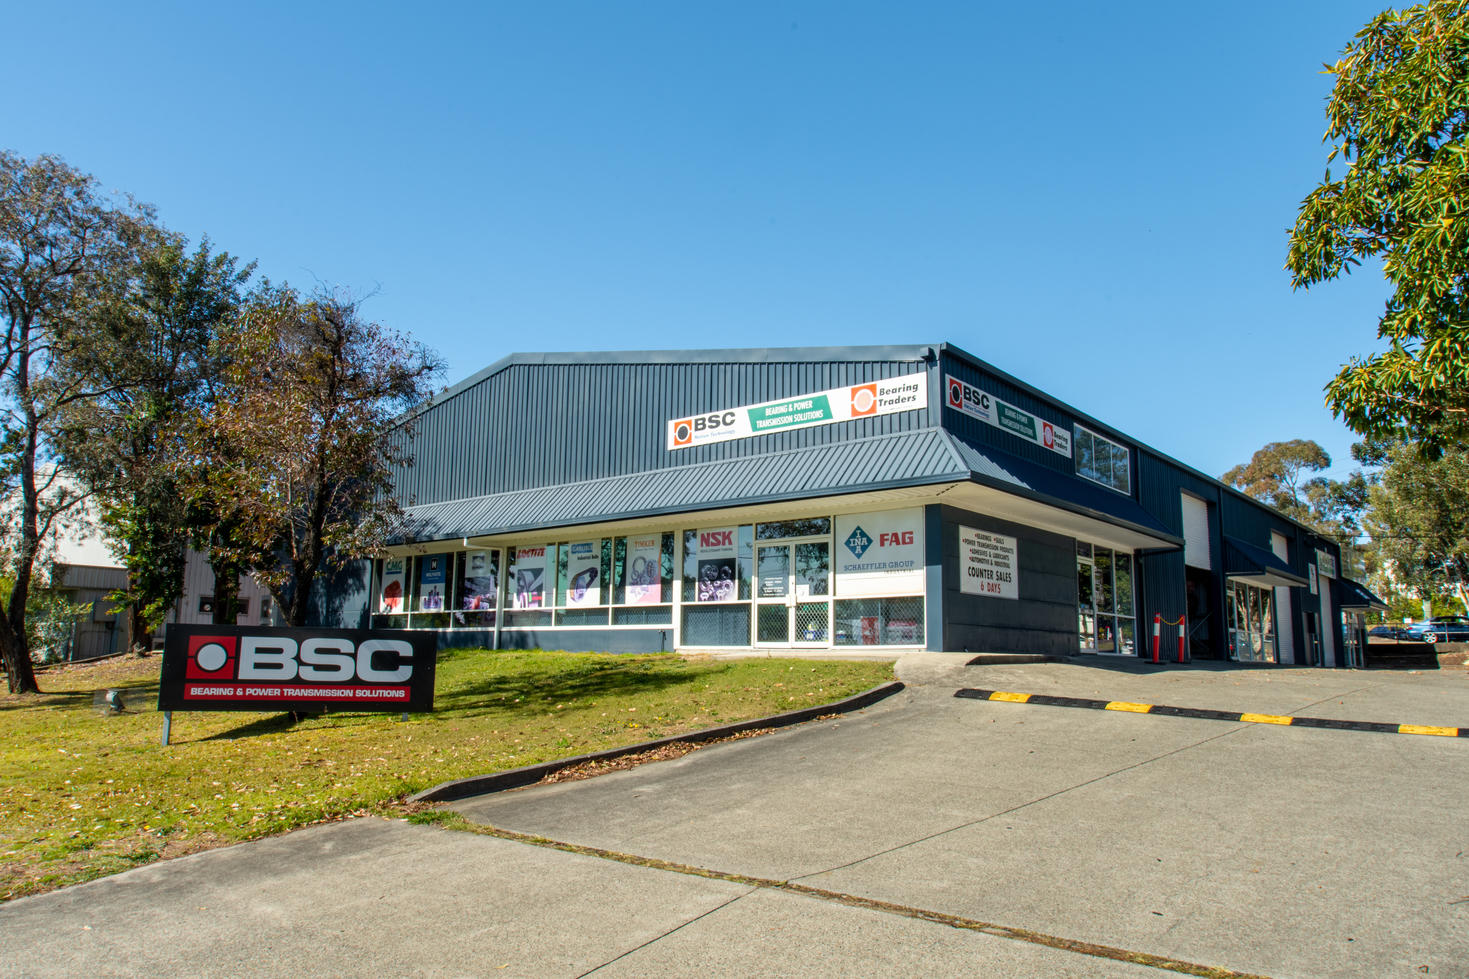 BSC Newcastle | 68 Munibung Road, Cardiff, New South Wales 2285 | +61 2 4903 1000